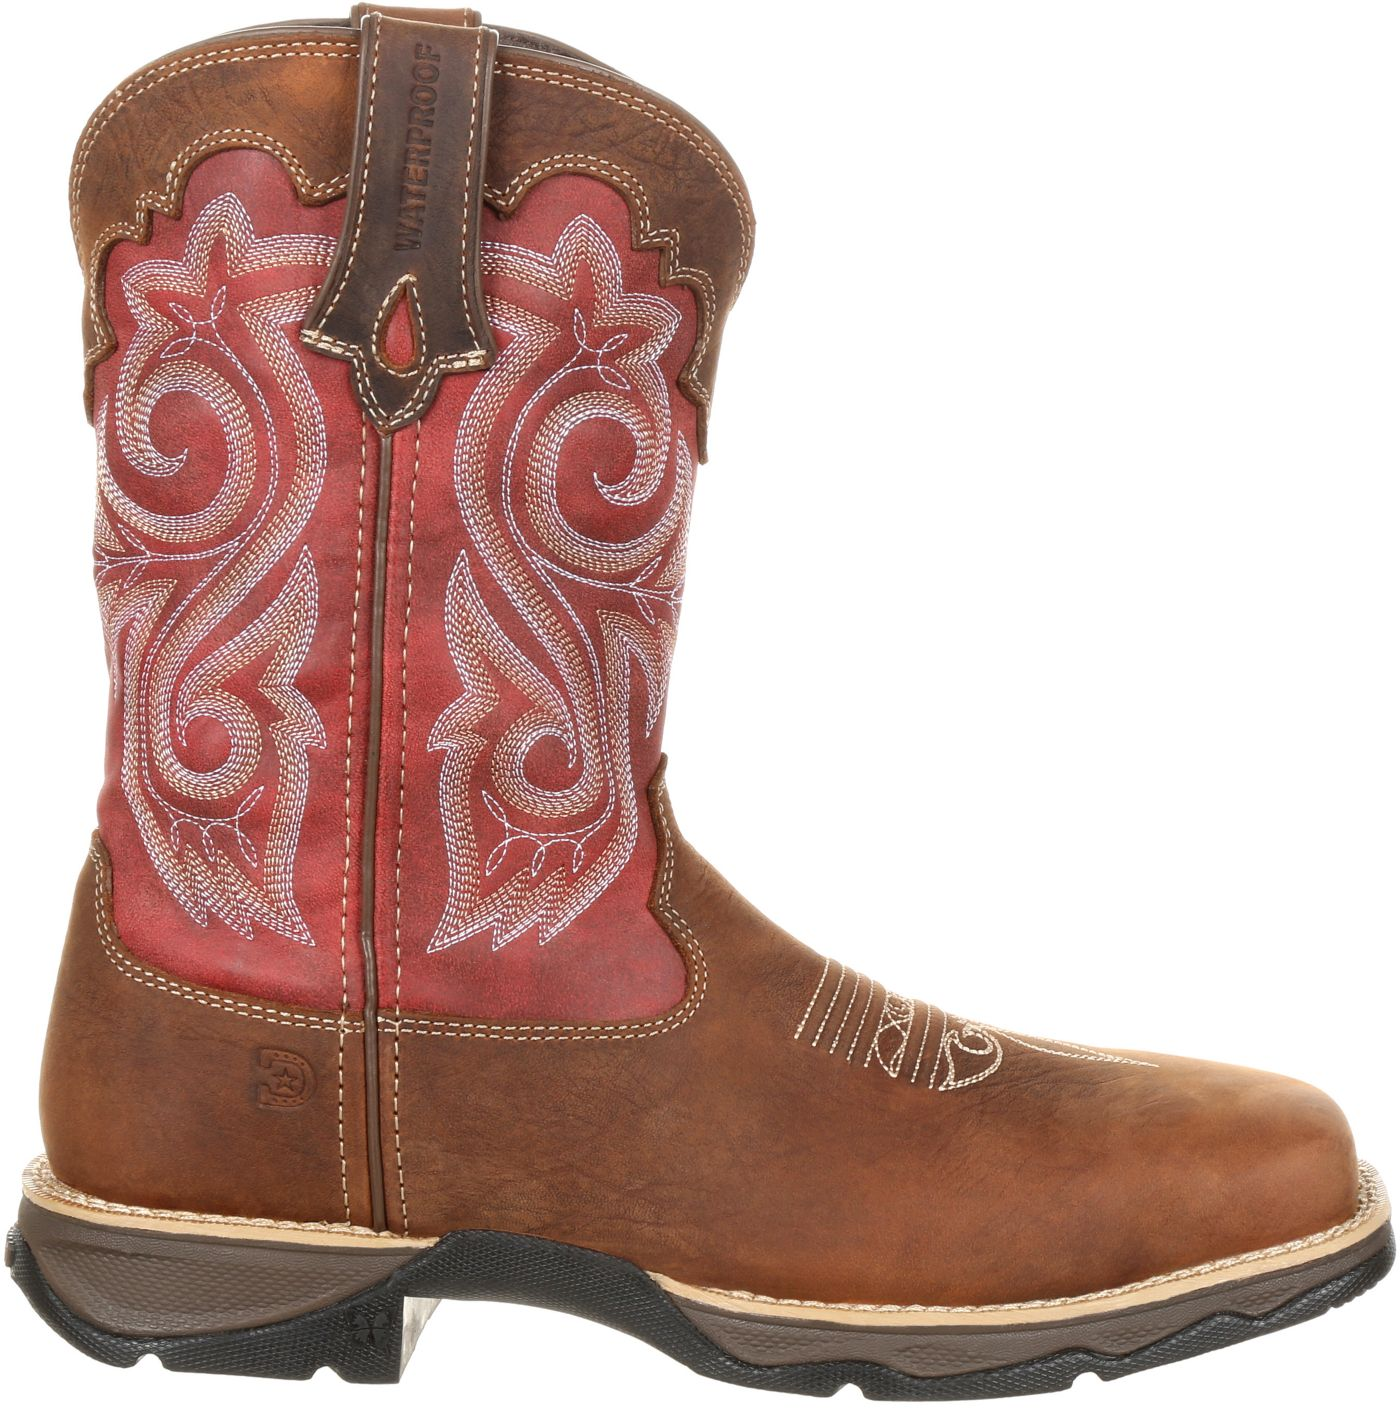 Durango Women's Lady Rebel Waterproof Composite Toe Western Work Boots